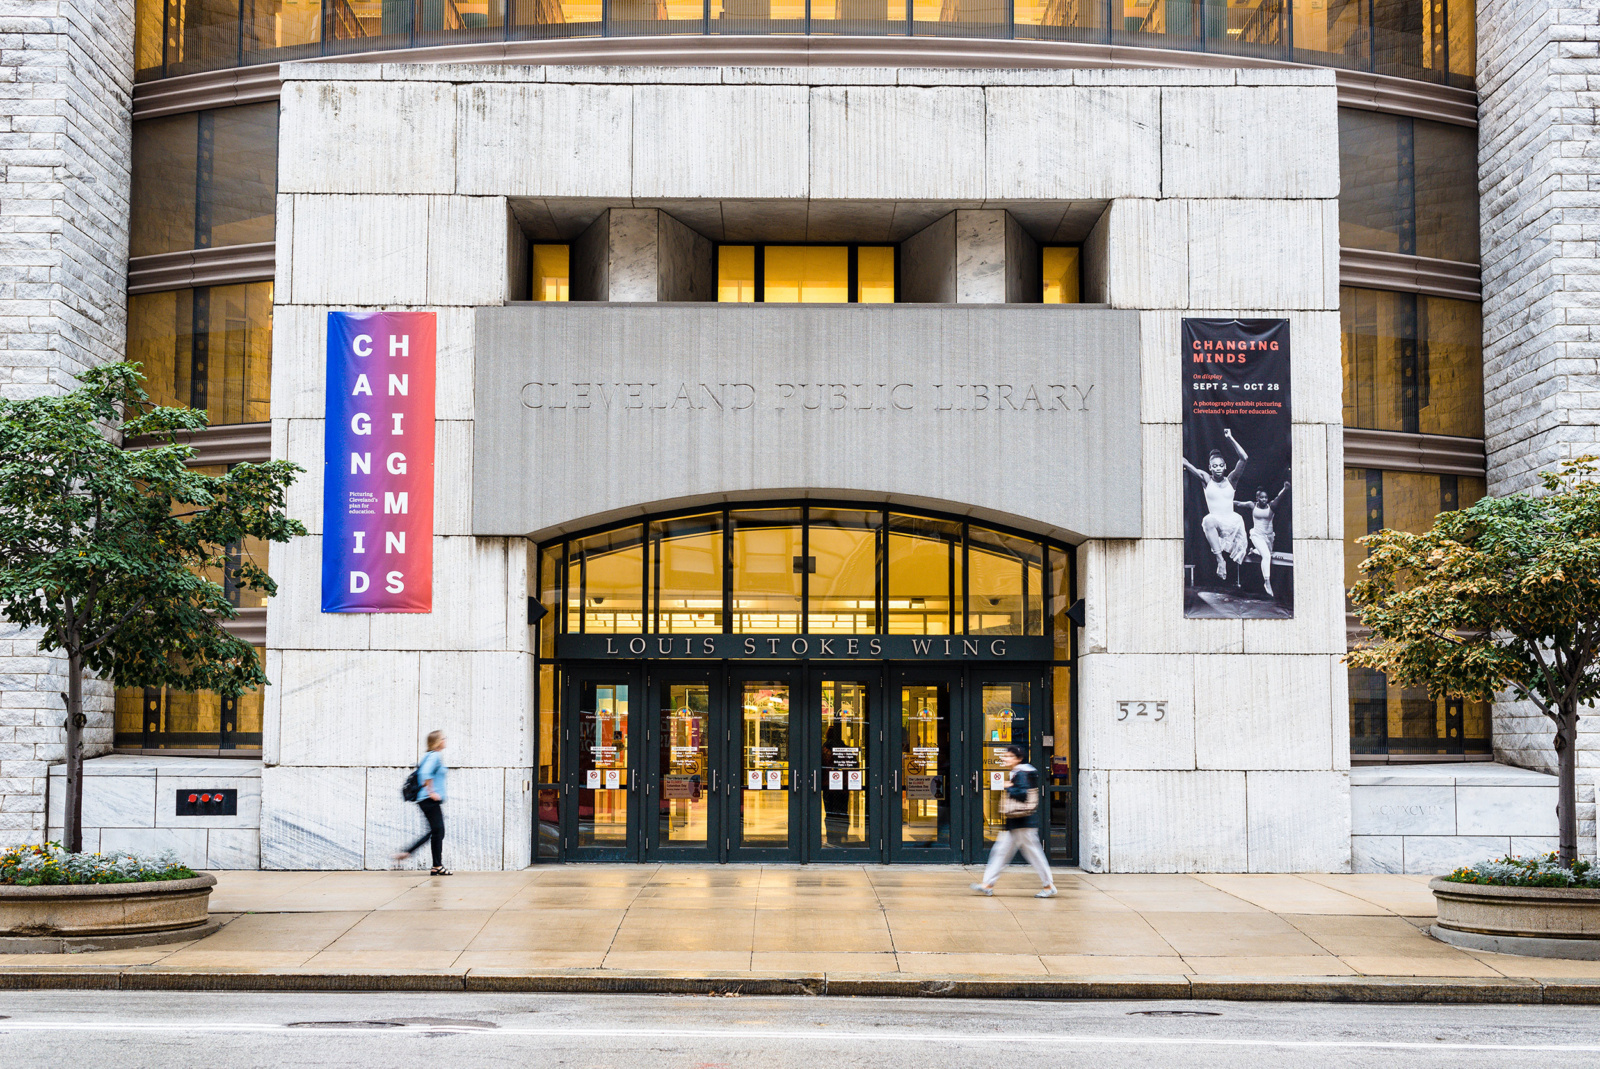 Cleveland Public Library entrance with brand design hanging banners for the Changing Minds exhibition